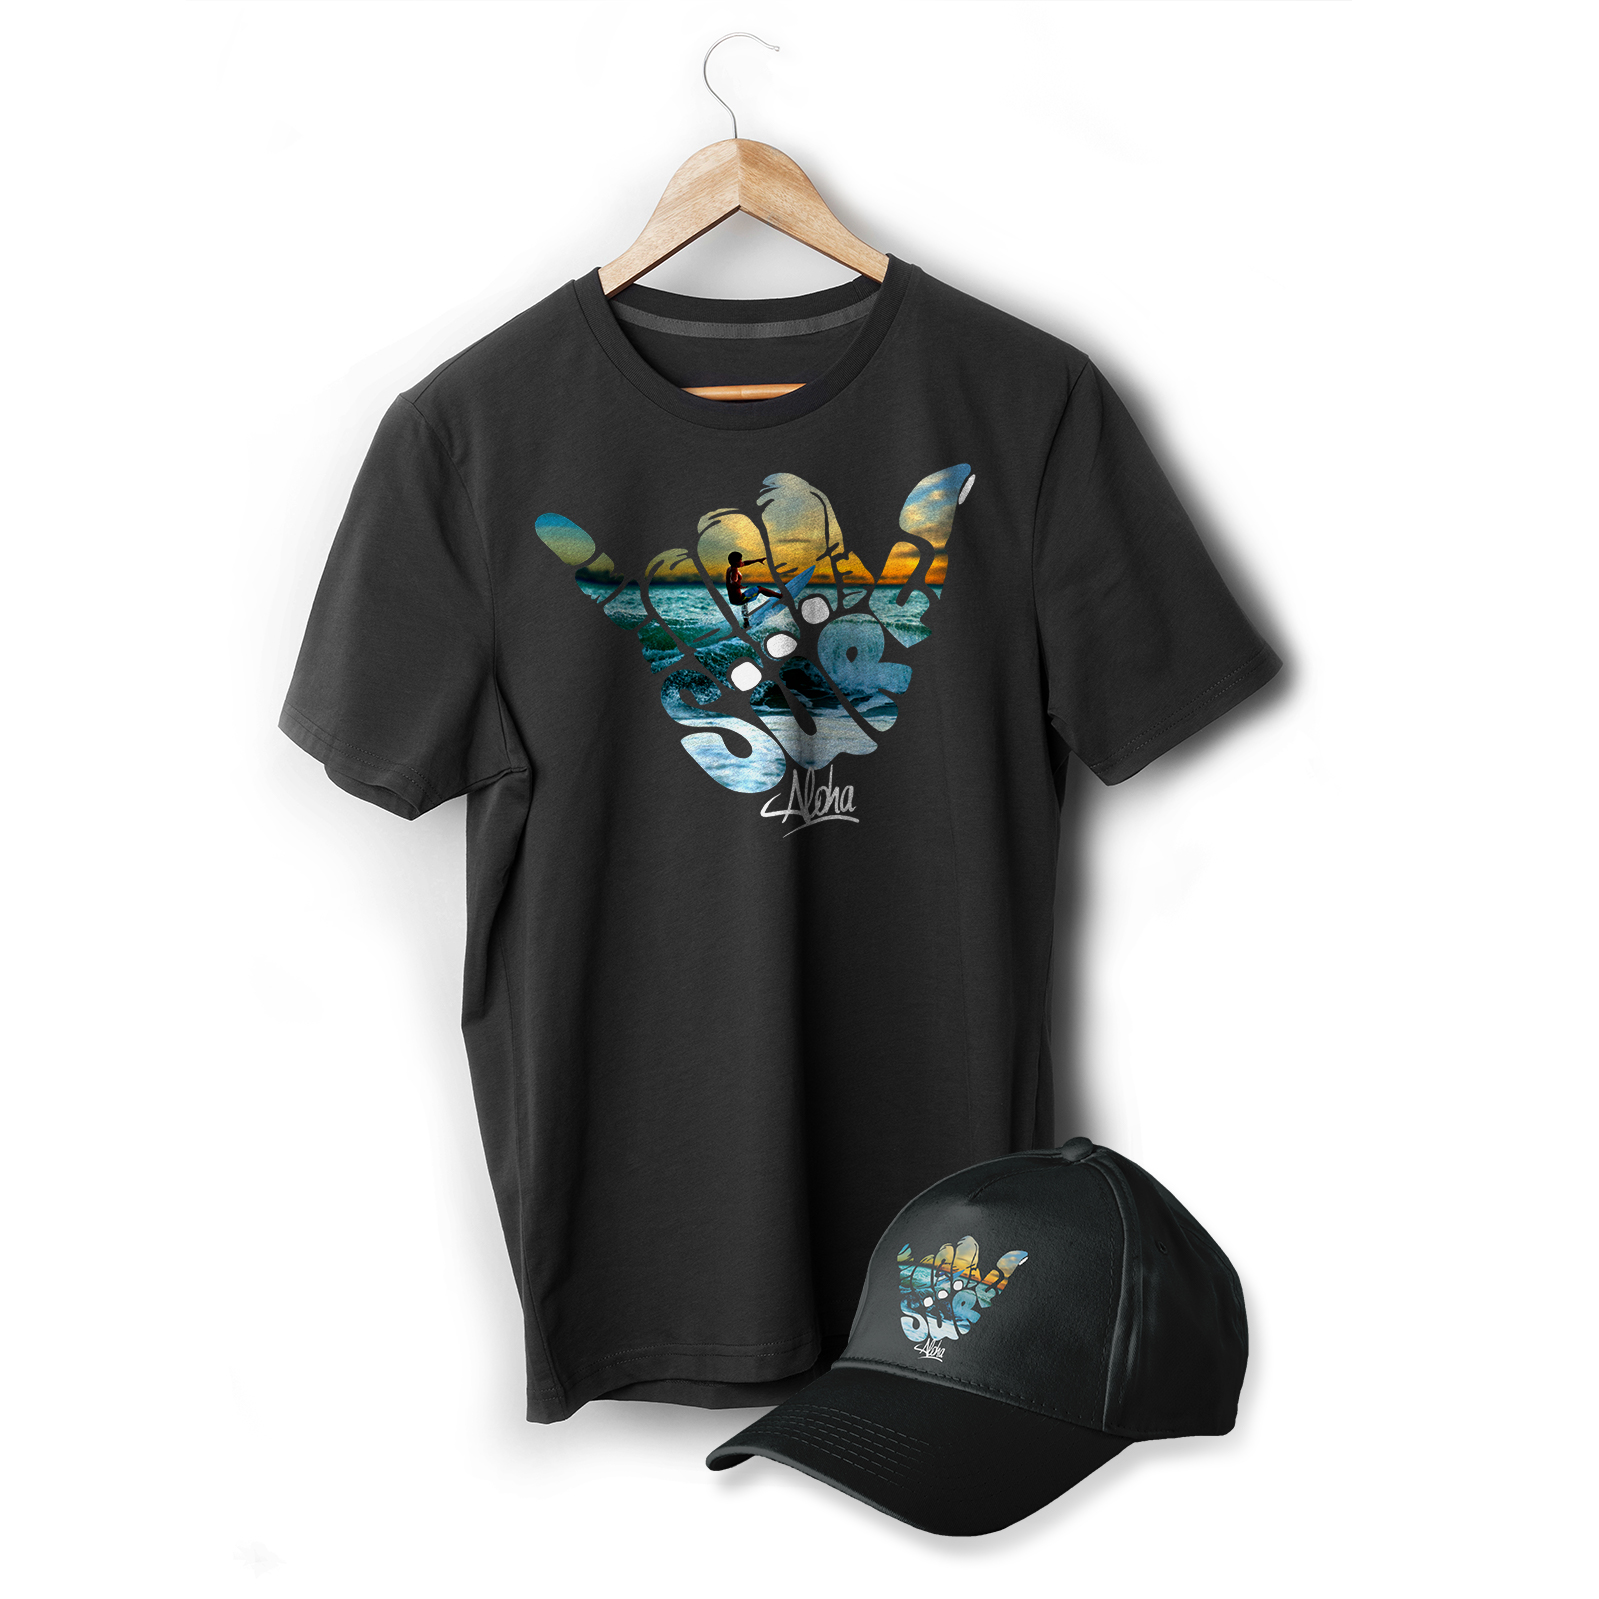 Aloha Surf T-Shirt and Cap Heat Transfer Print